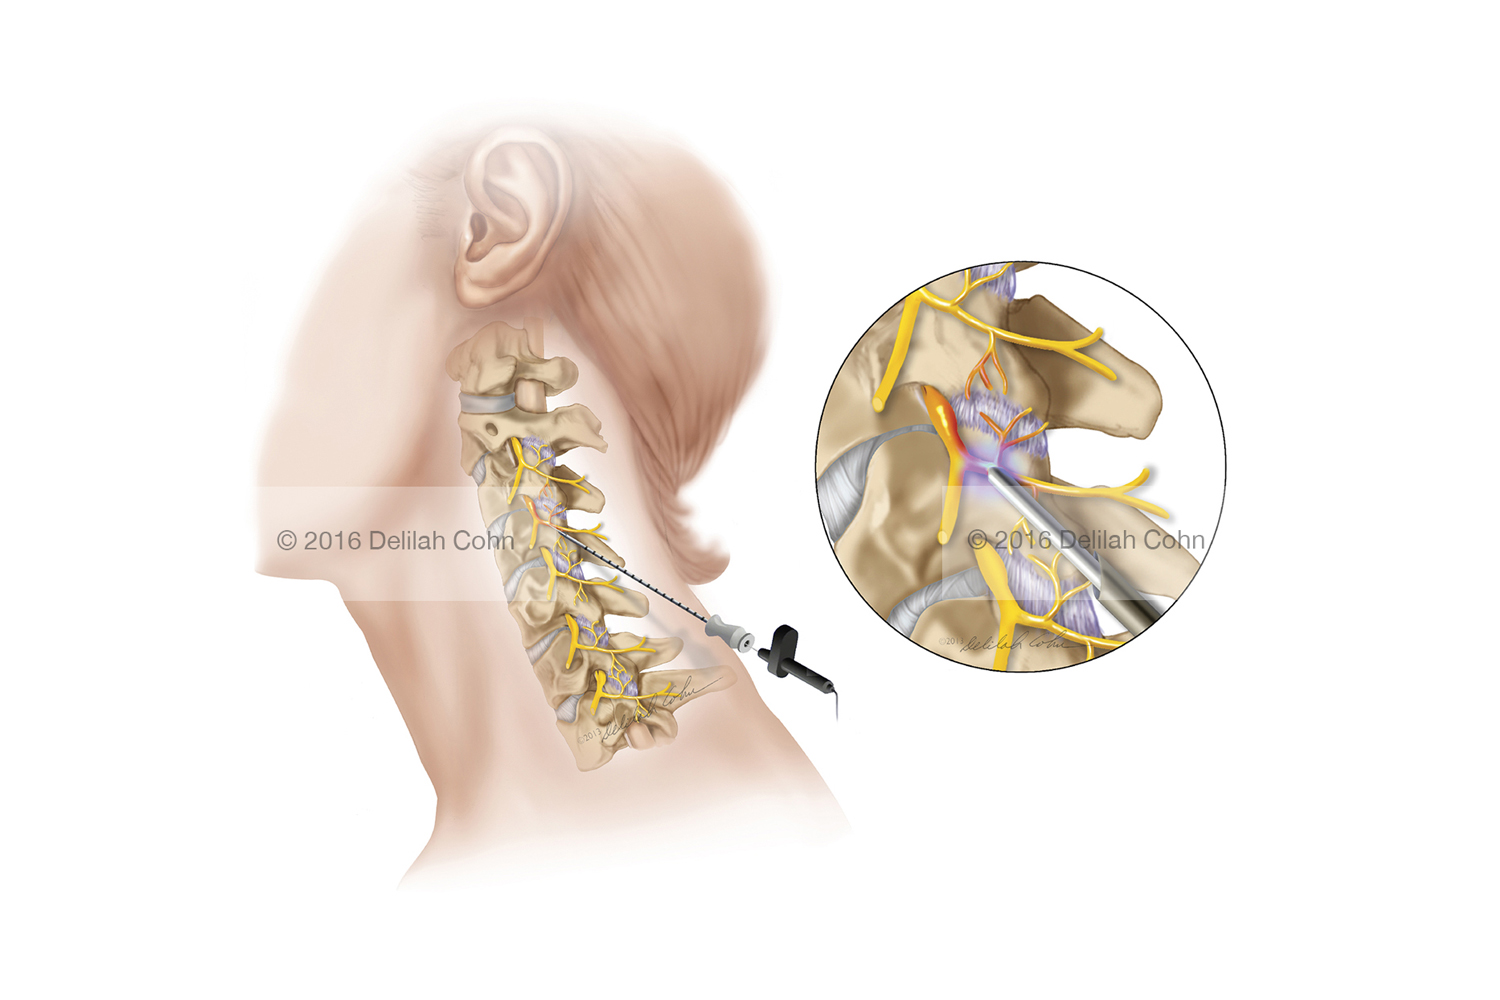 Cervical Facet Syndrome — Radio-Frequency Ablation (RFA)